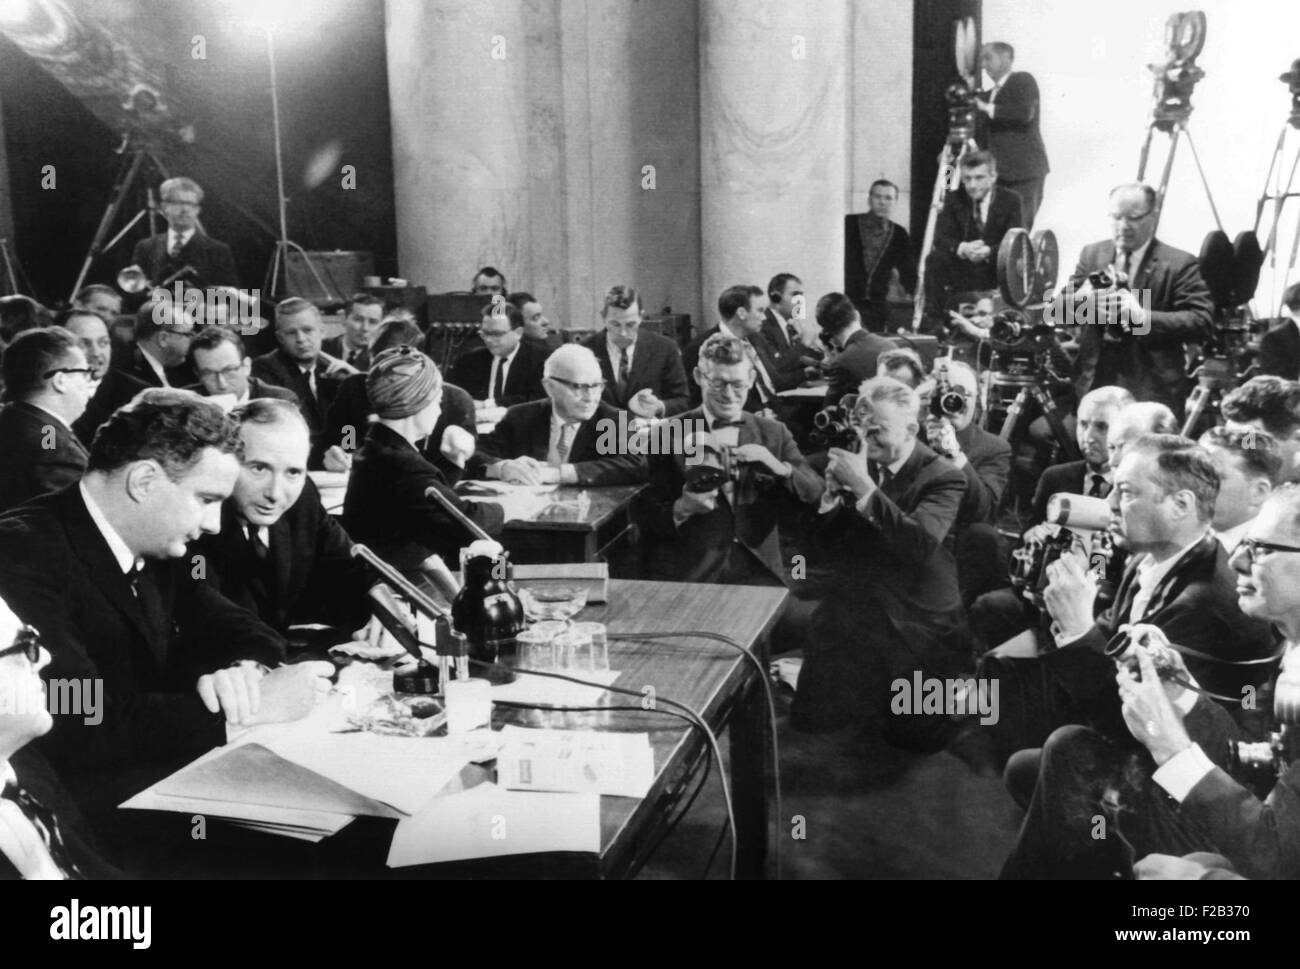 Former Senate aide Bobby Baker (2nd from left) before the Senate Rules Committee. Feb. 25, 1964. He was questioned - Stock Image